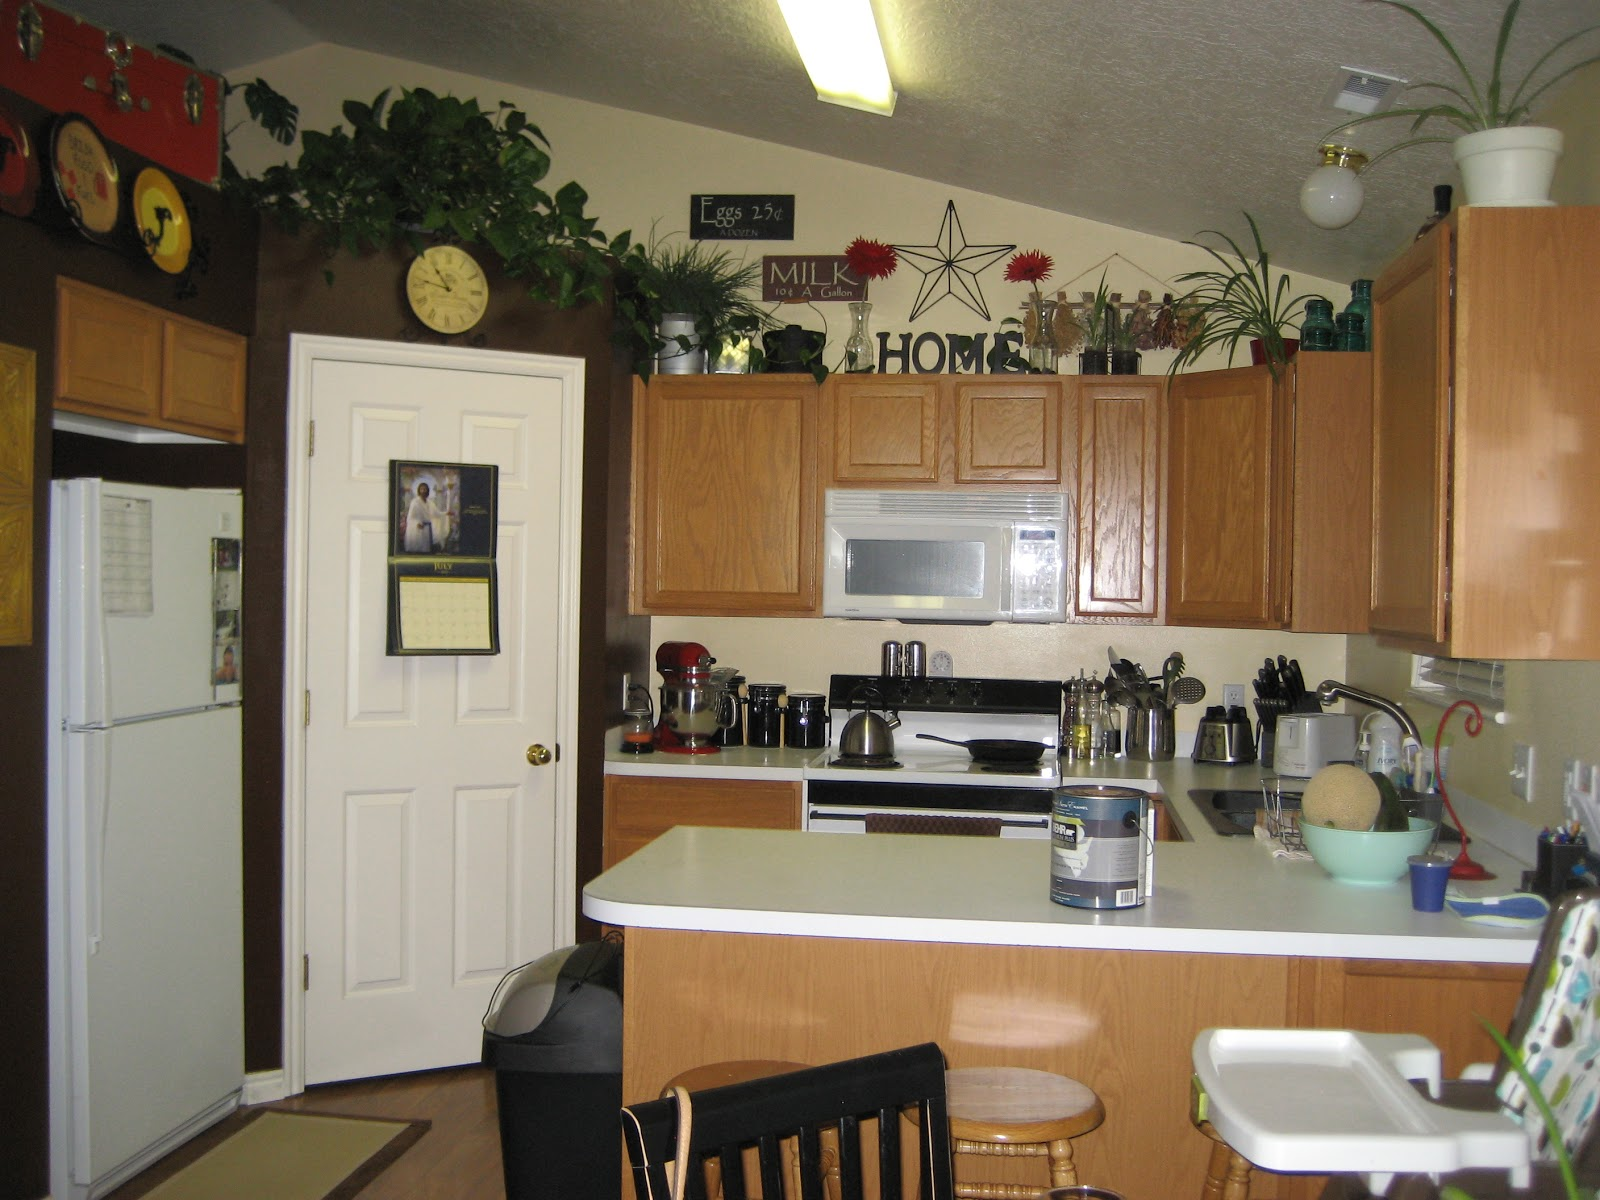 Above Kitchen Cabinet Decorations - Space above kitchen cabinet decorating ideas